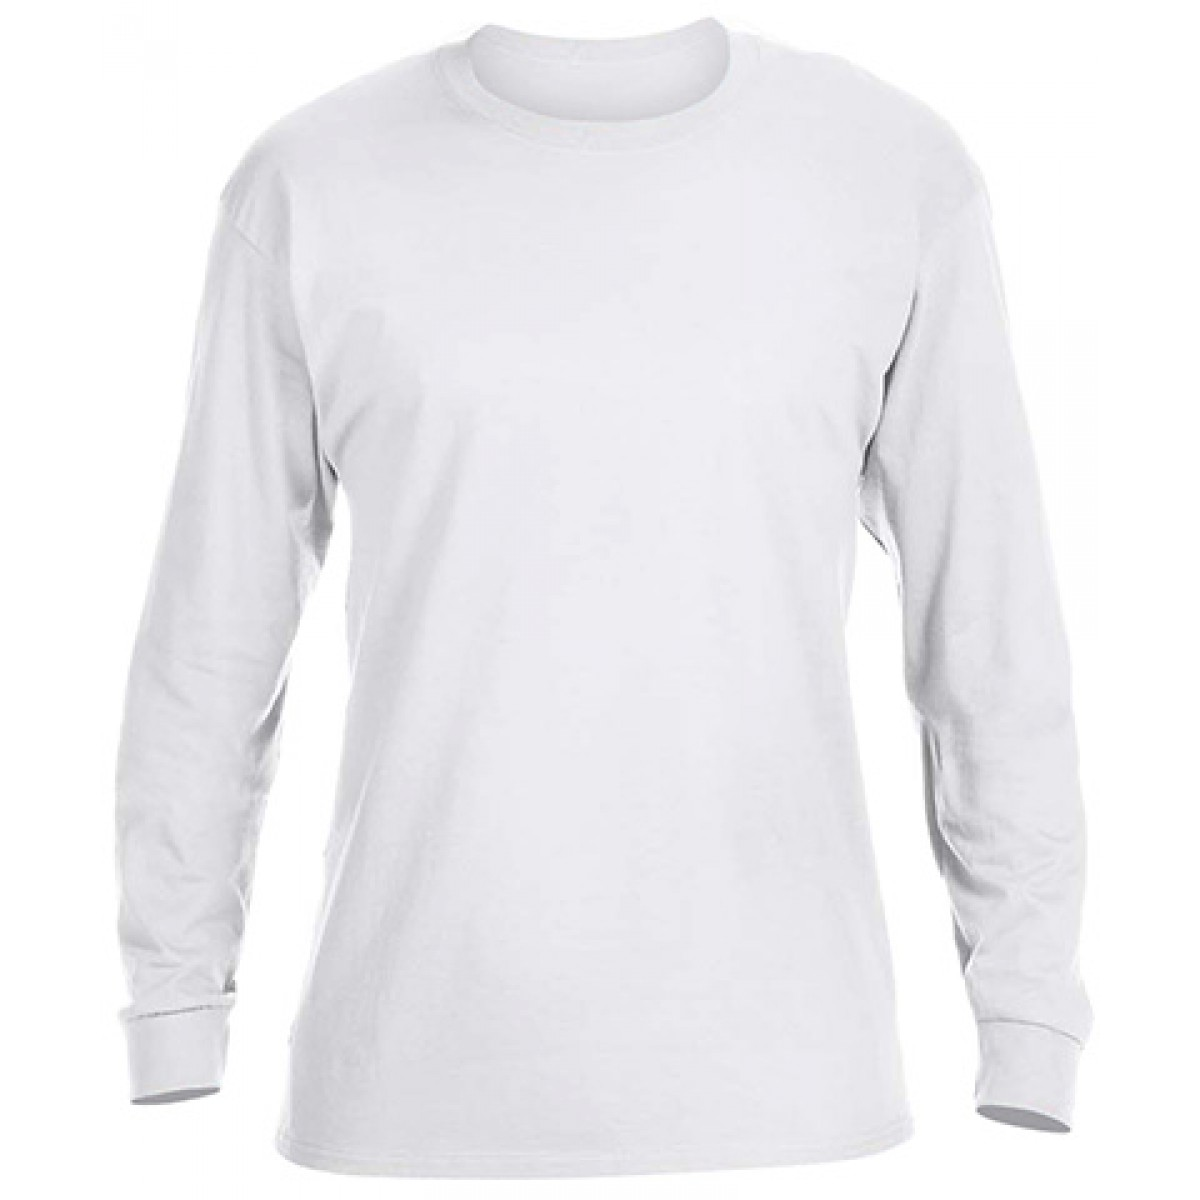 Heavy Cotton Long-Sleeve Adidas Shirt-White-M